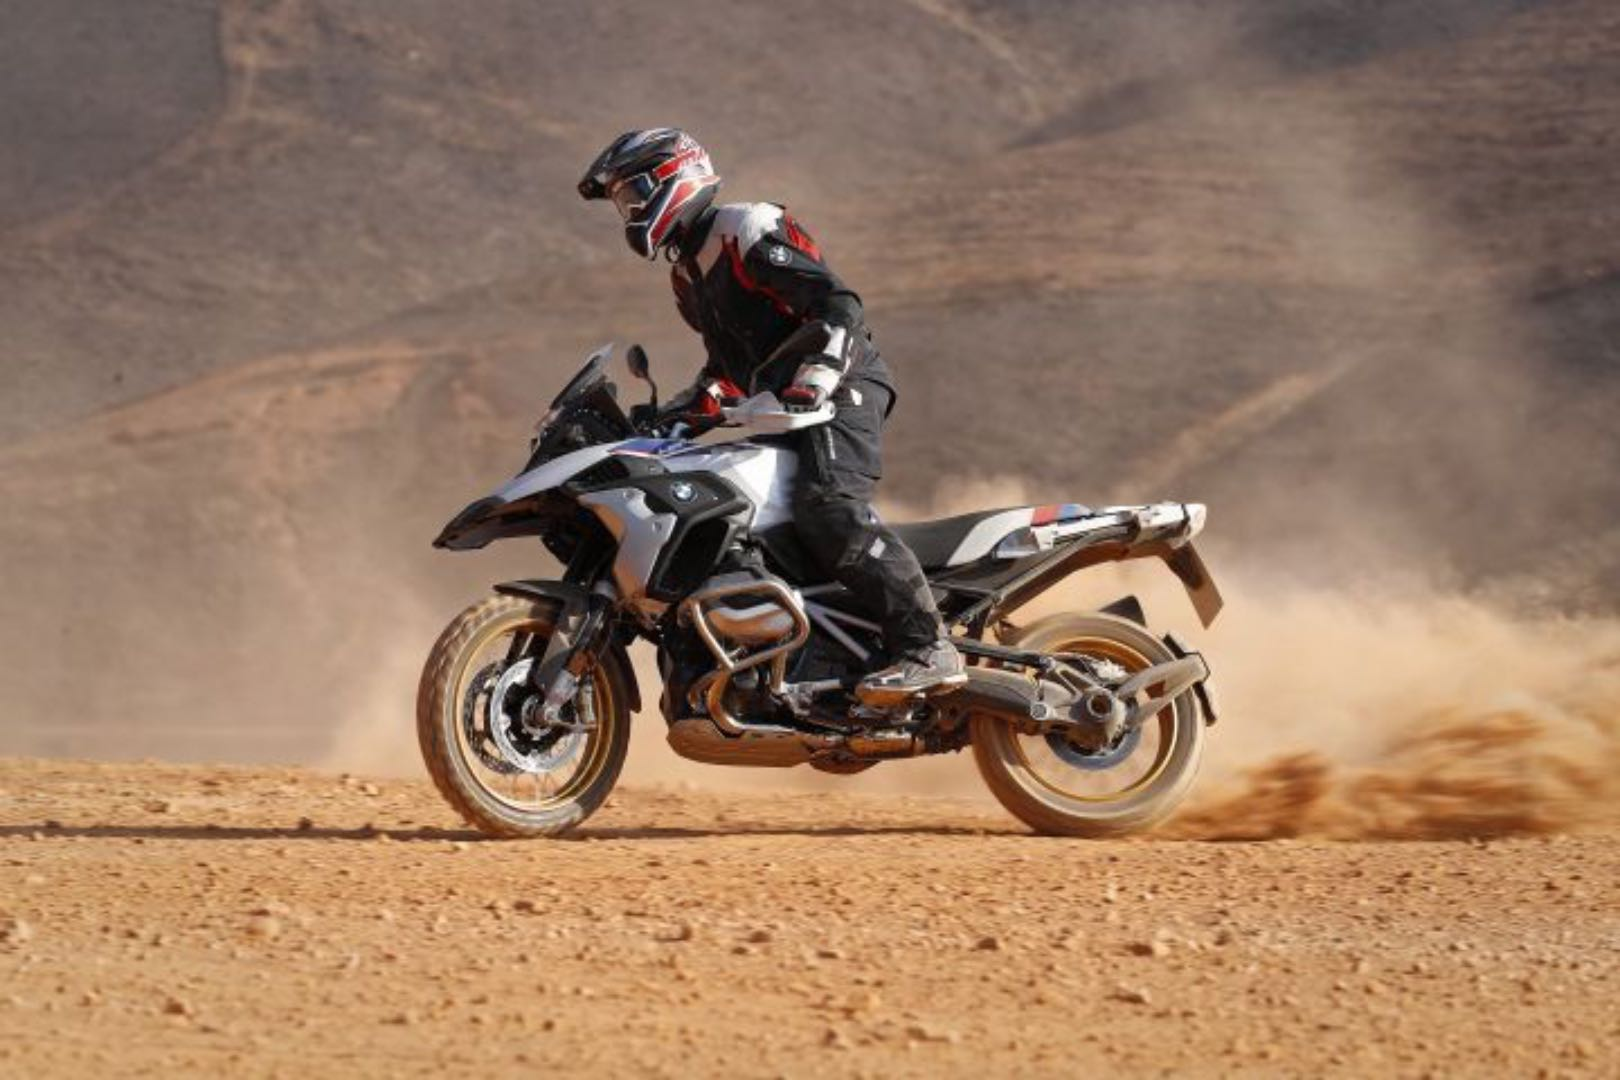 R 1250 GS BMW in the sand